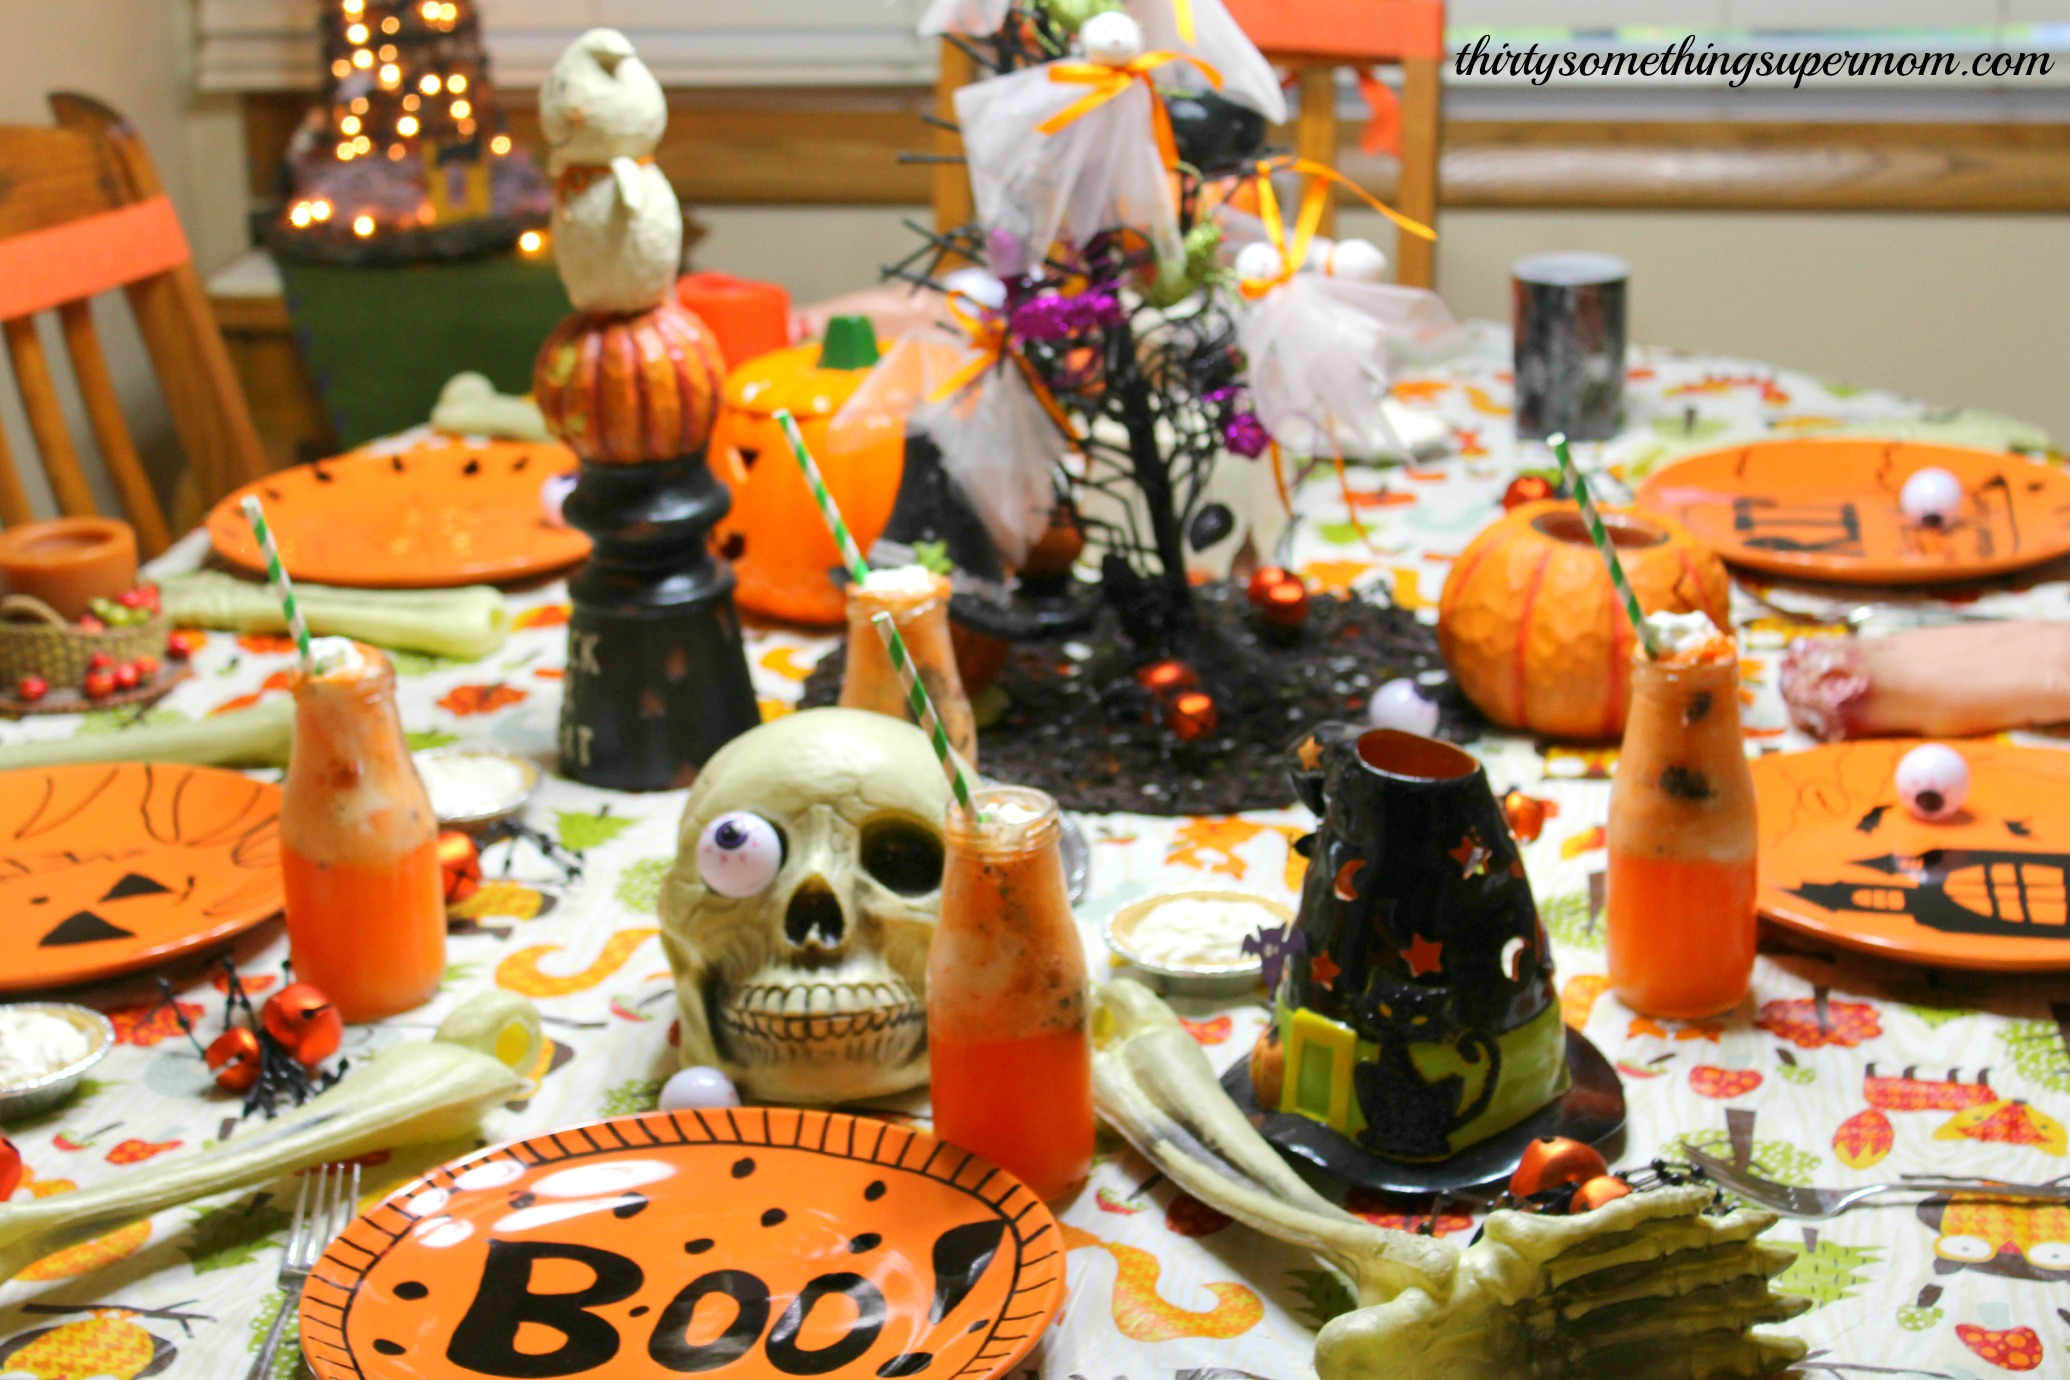 spooky halloween party tablescape ideas thirtysomethingsupermom. Black Bedroom Furniture Sets. Home Design Ideas